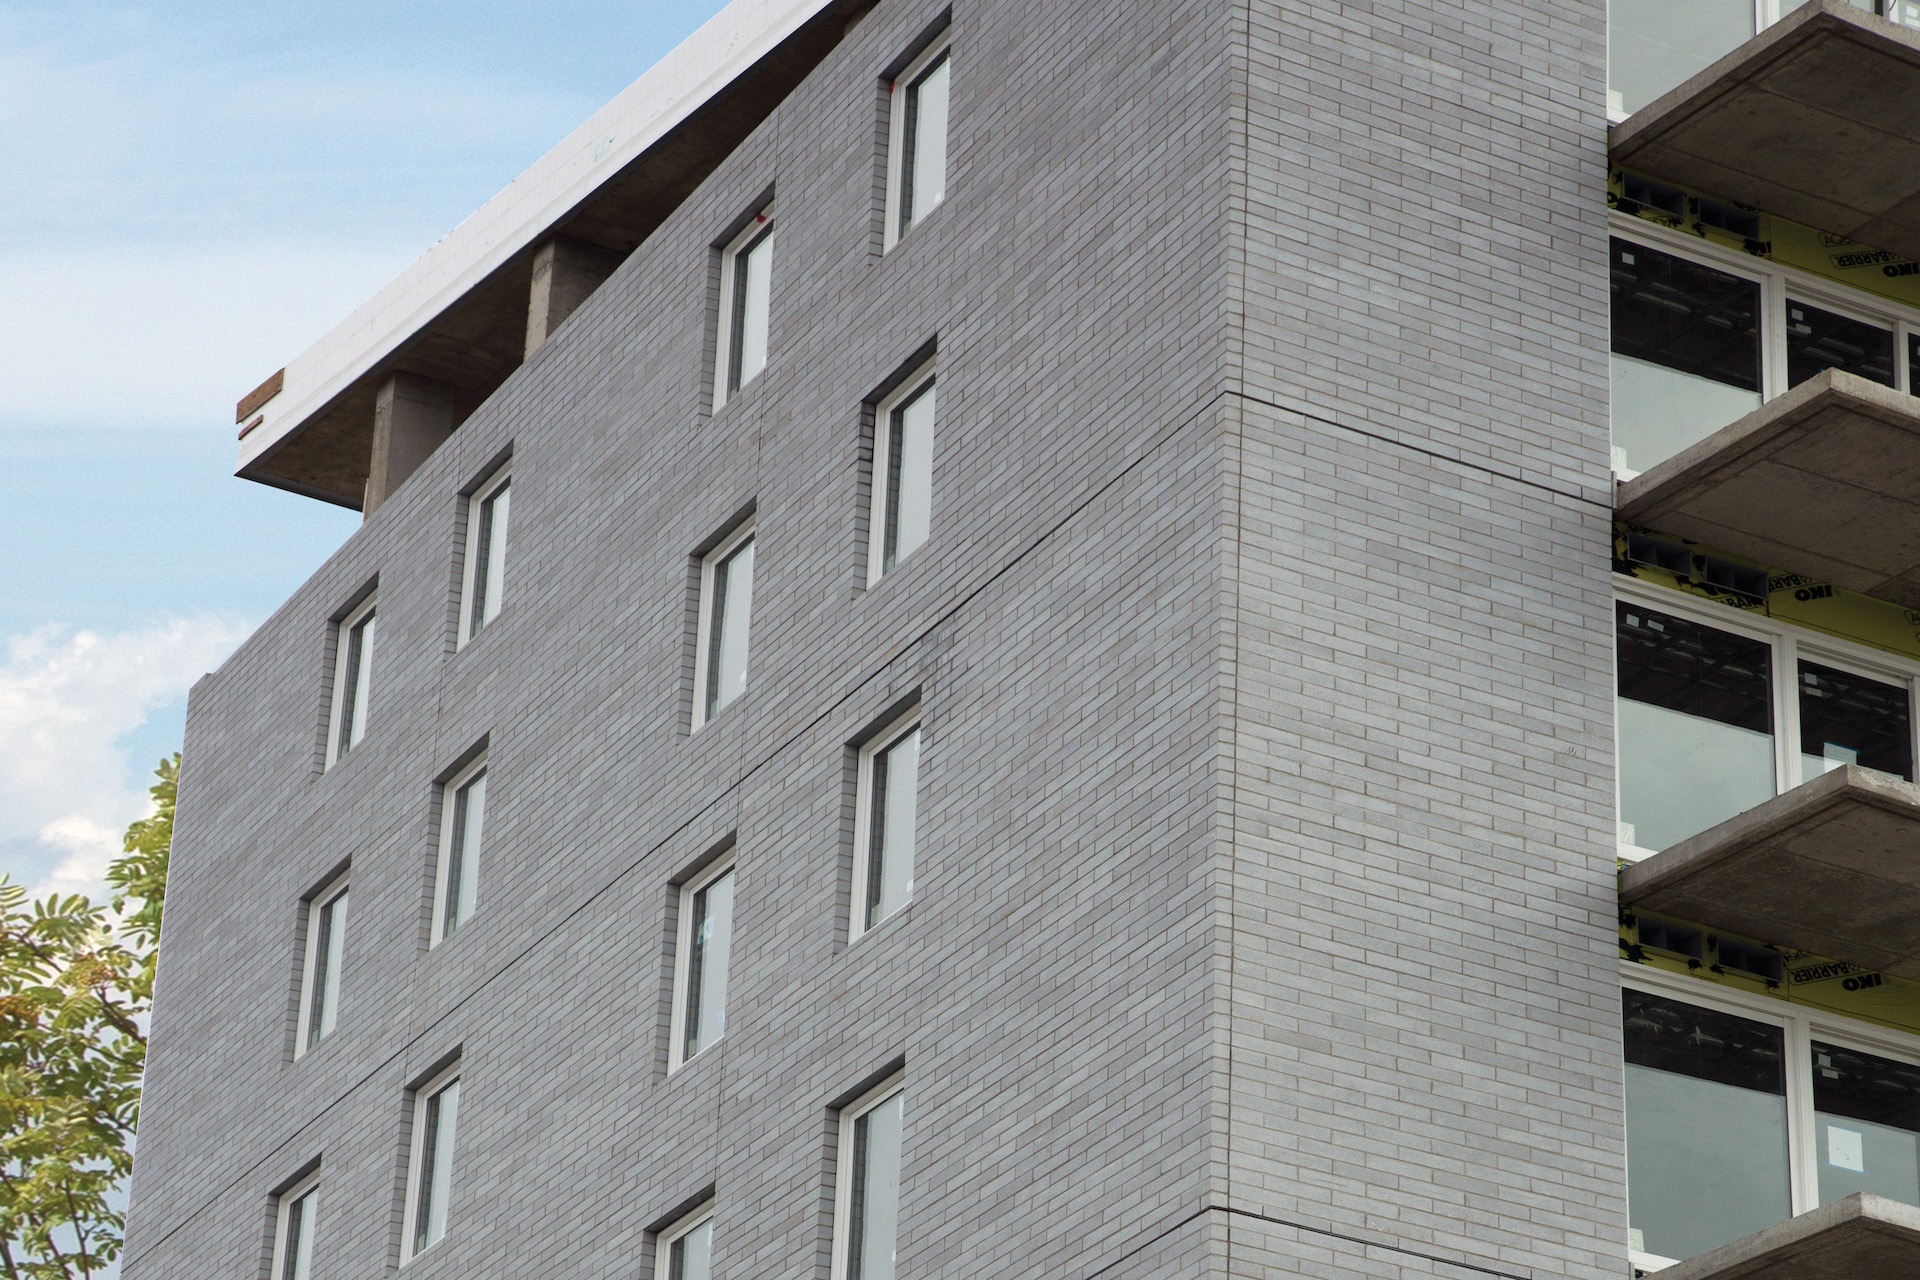 Building using Shaw Brick's Linear Smooth Concrete Block in Steel Grey